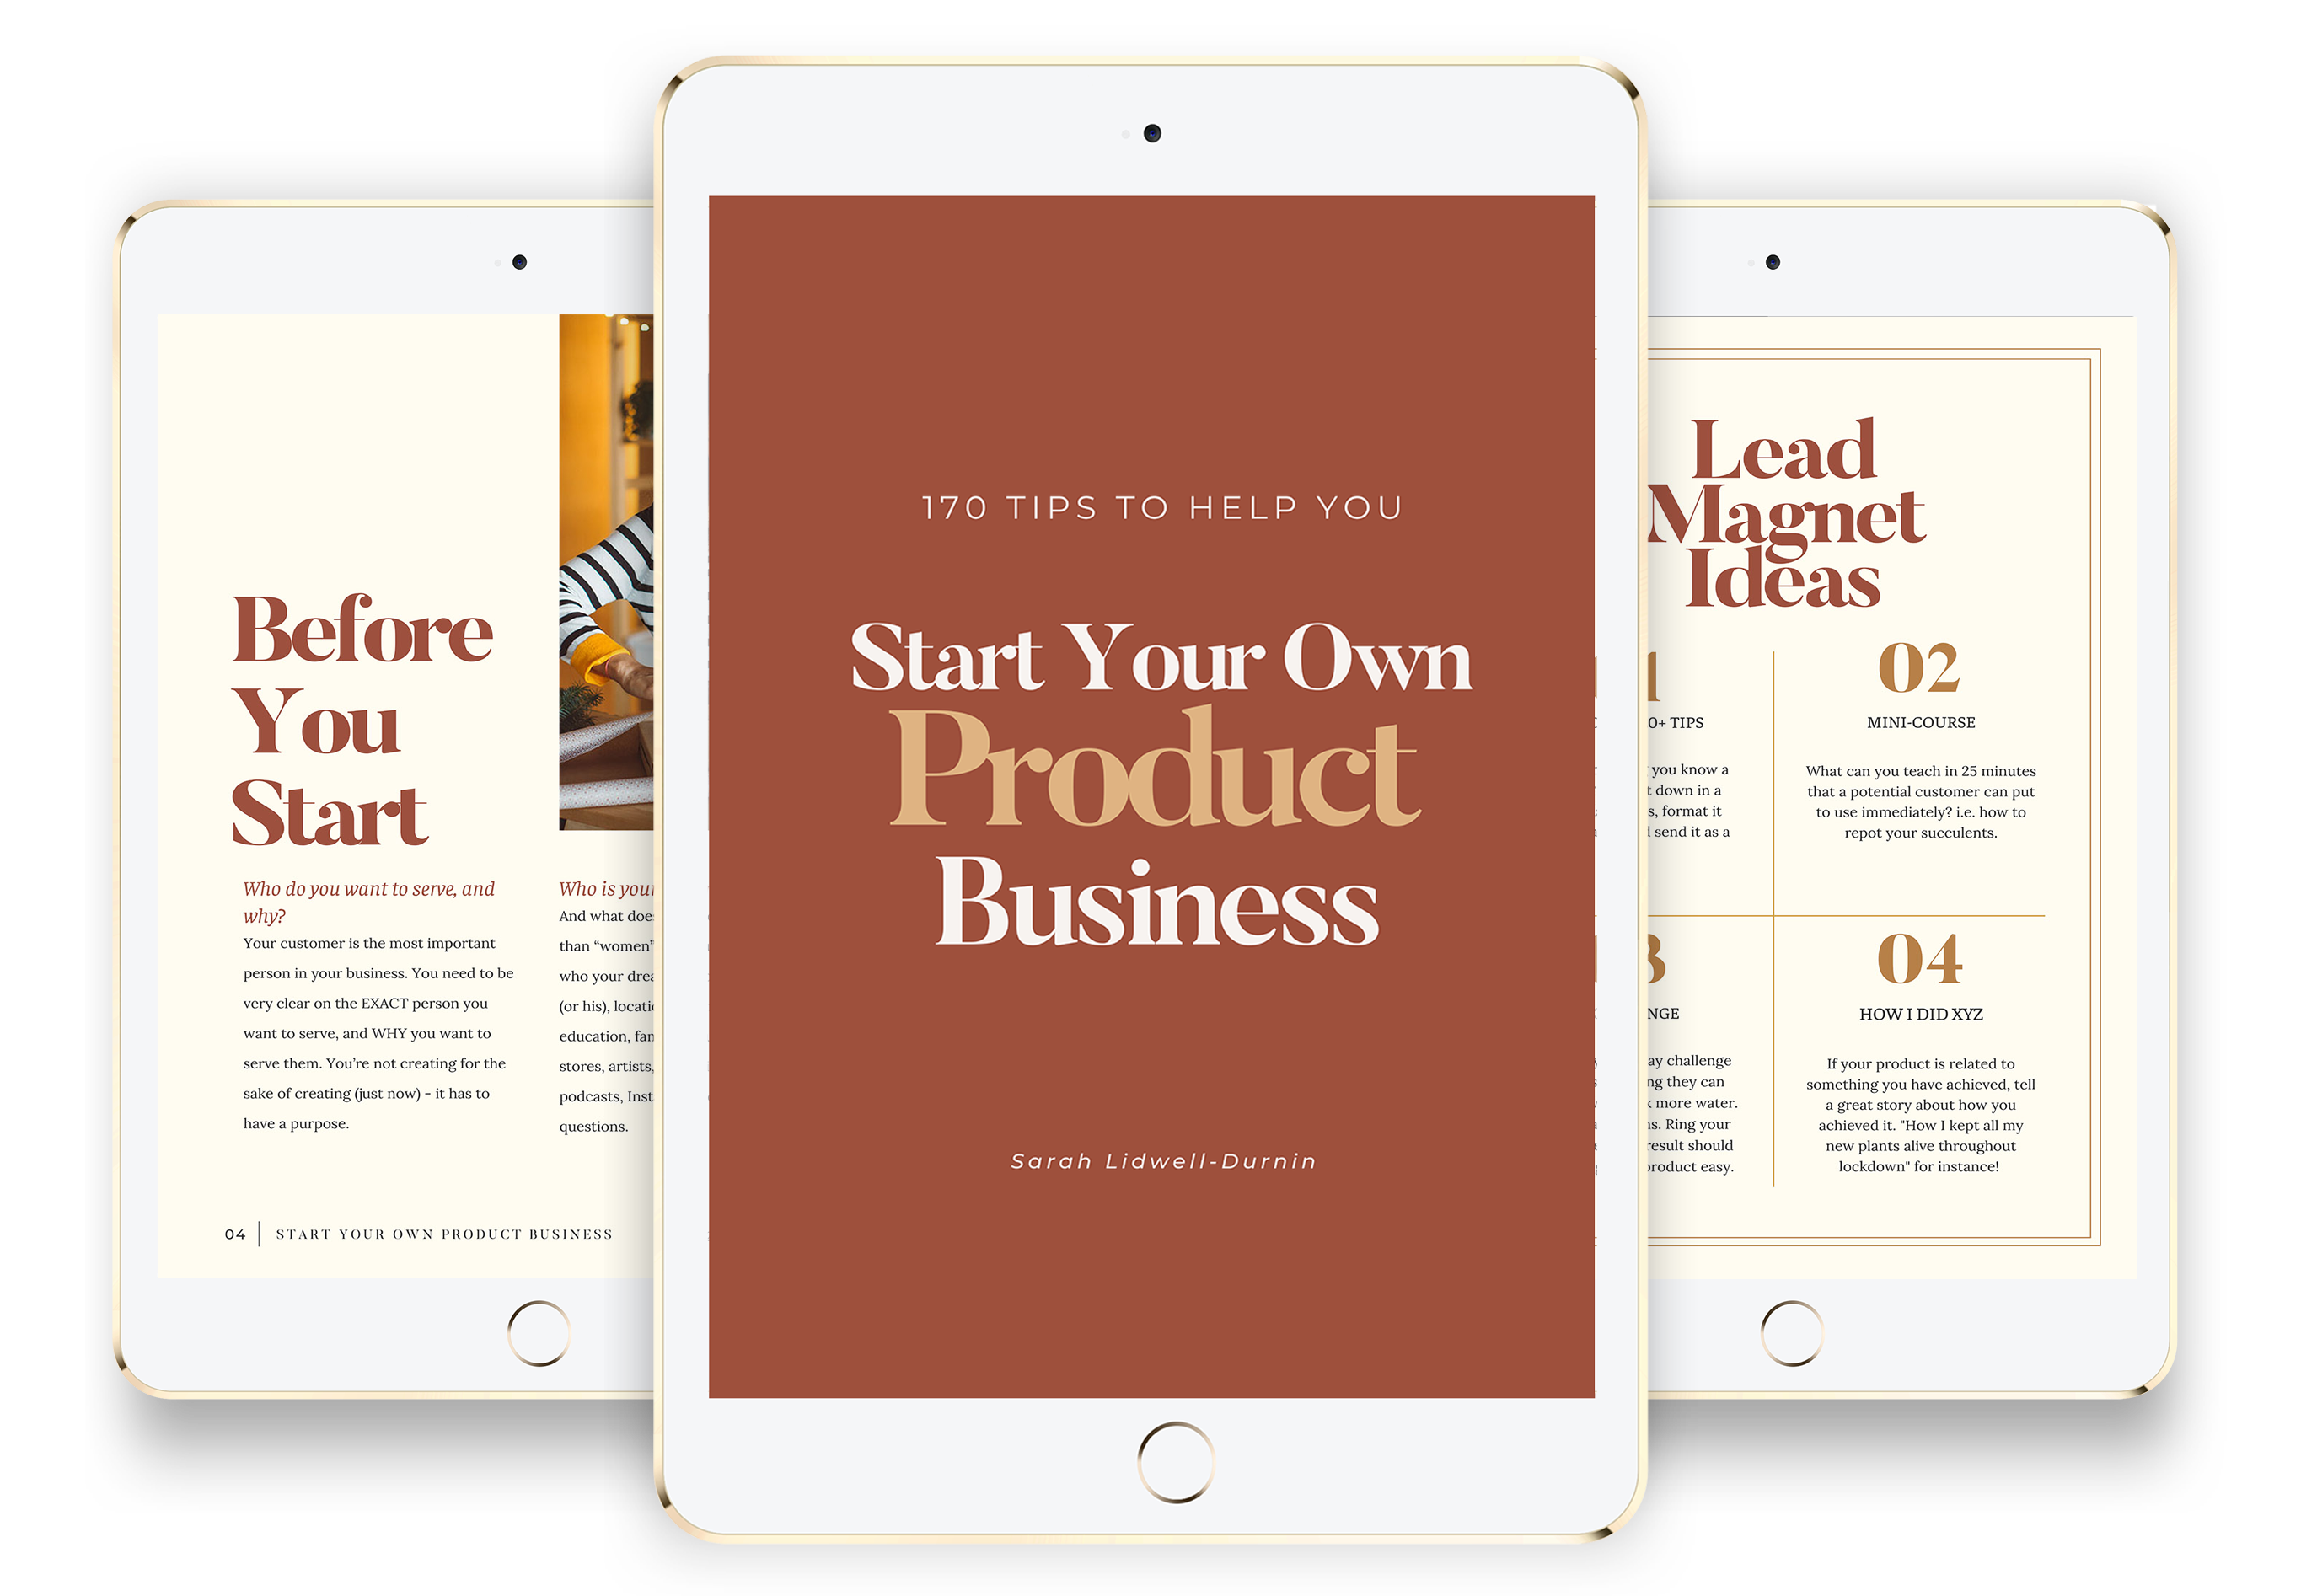 Get 170+ Practical Tips To Help You Start Your New Product Business